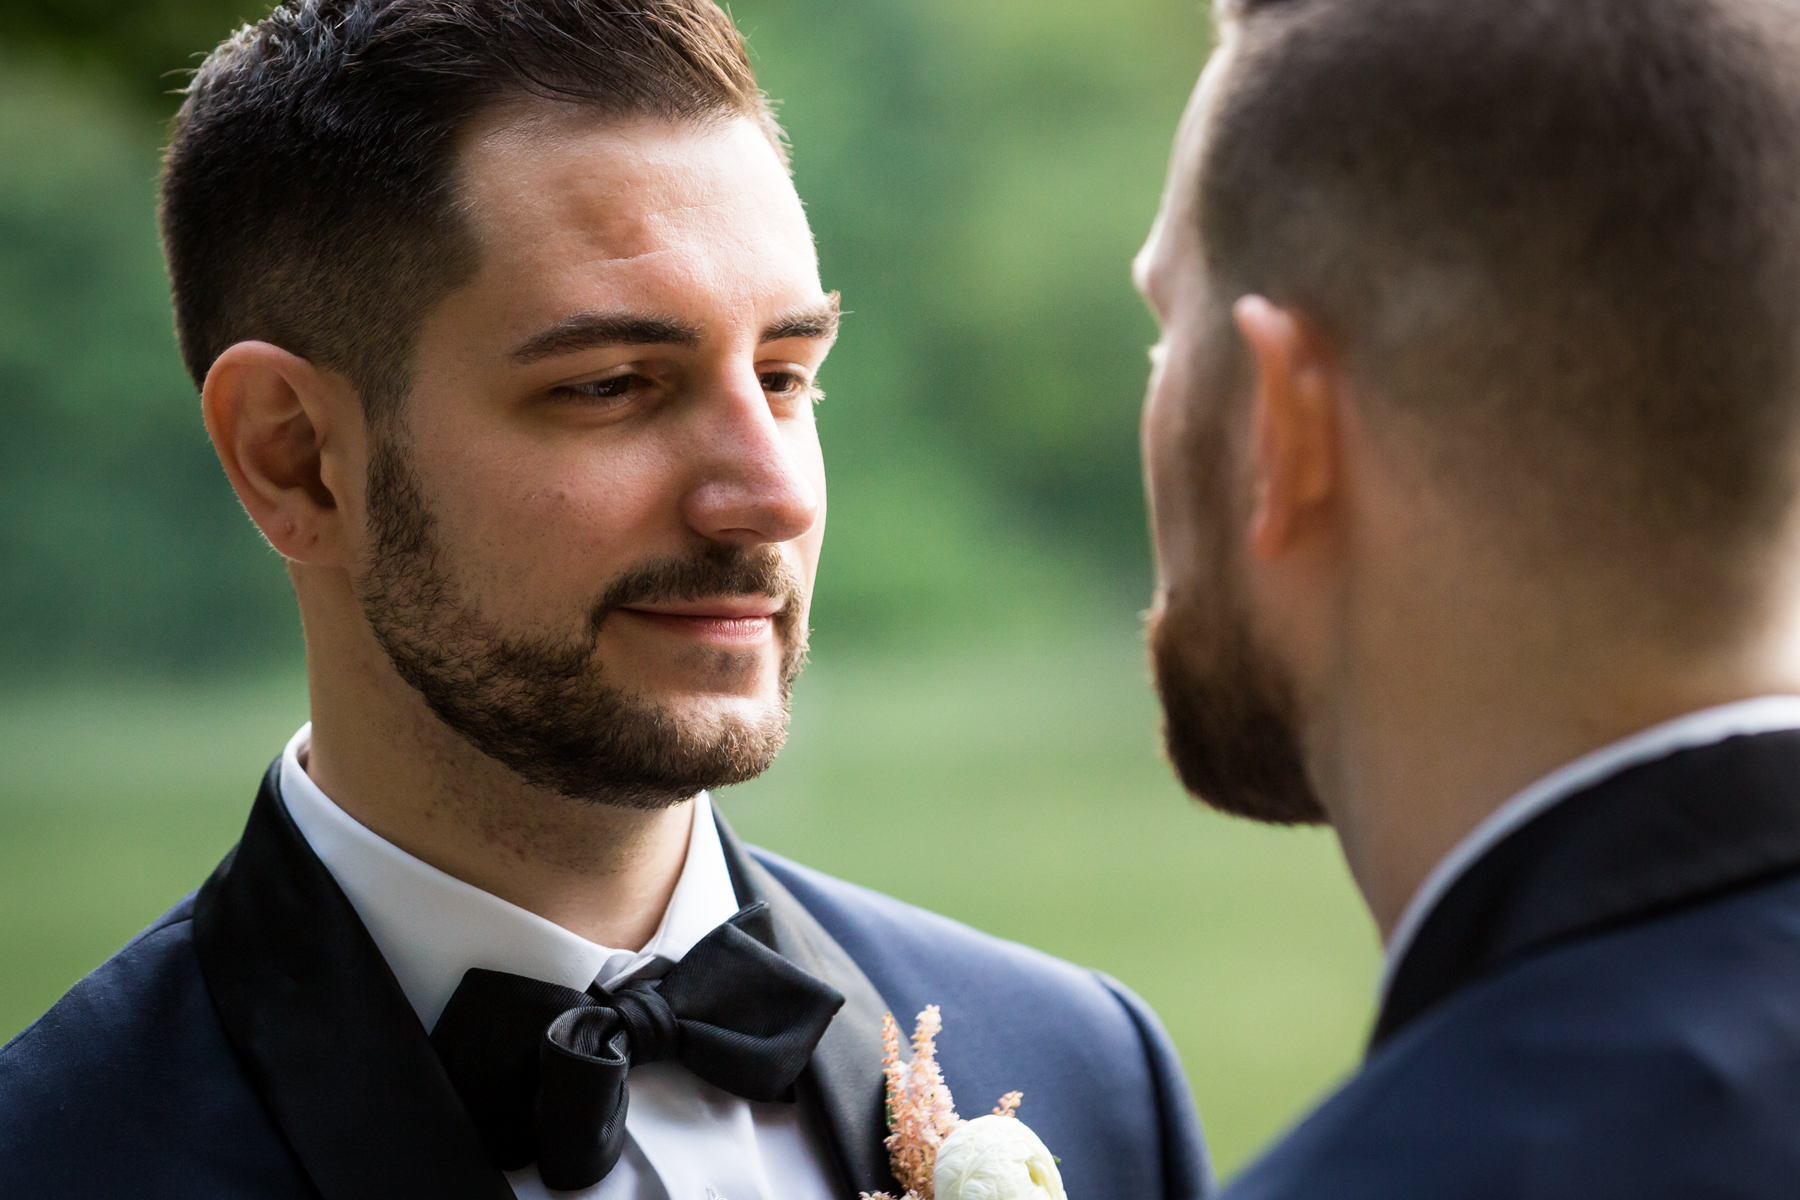 Grooms saying vows for an article entitled, 'Do you need a permit to get married in Central Park?'